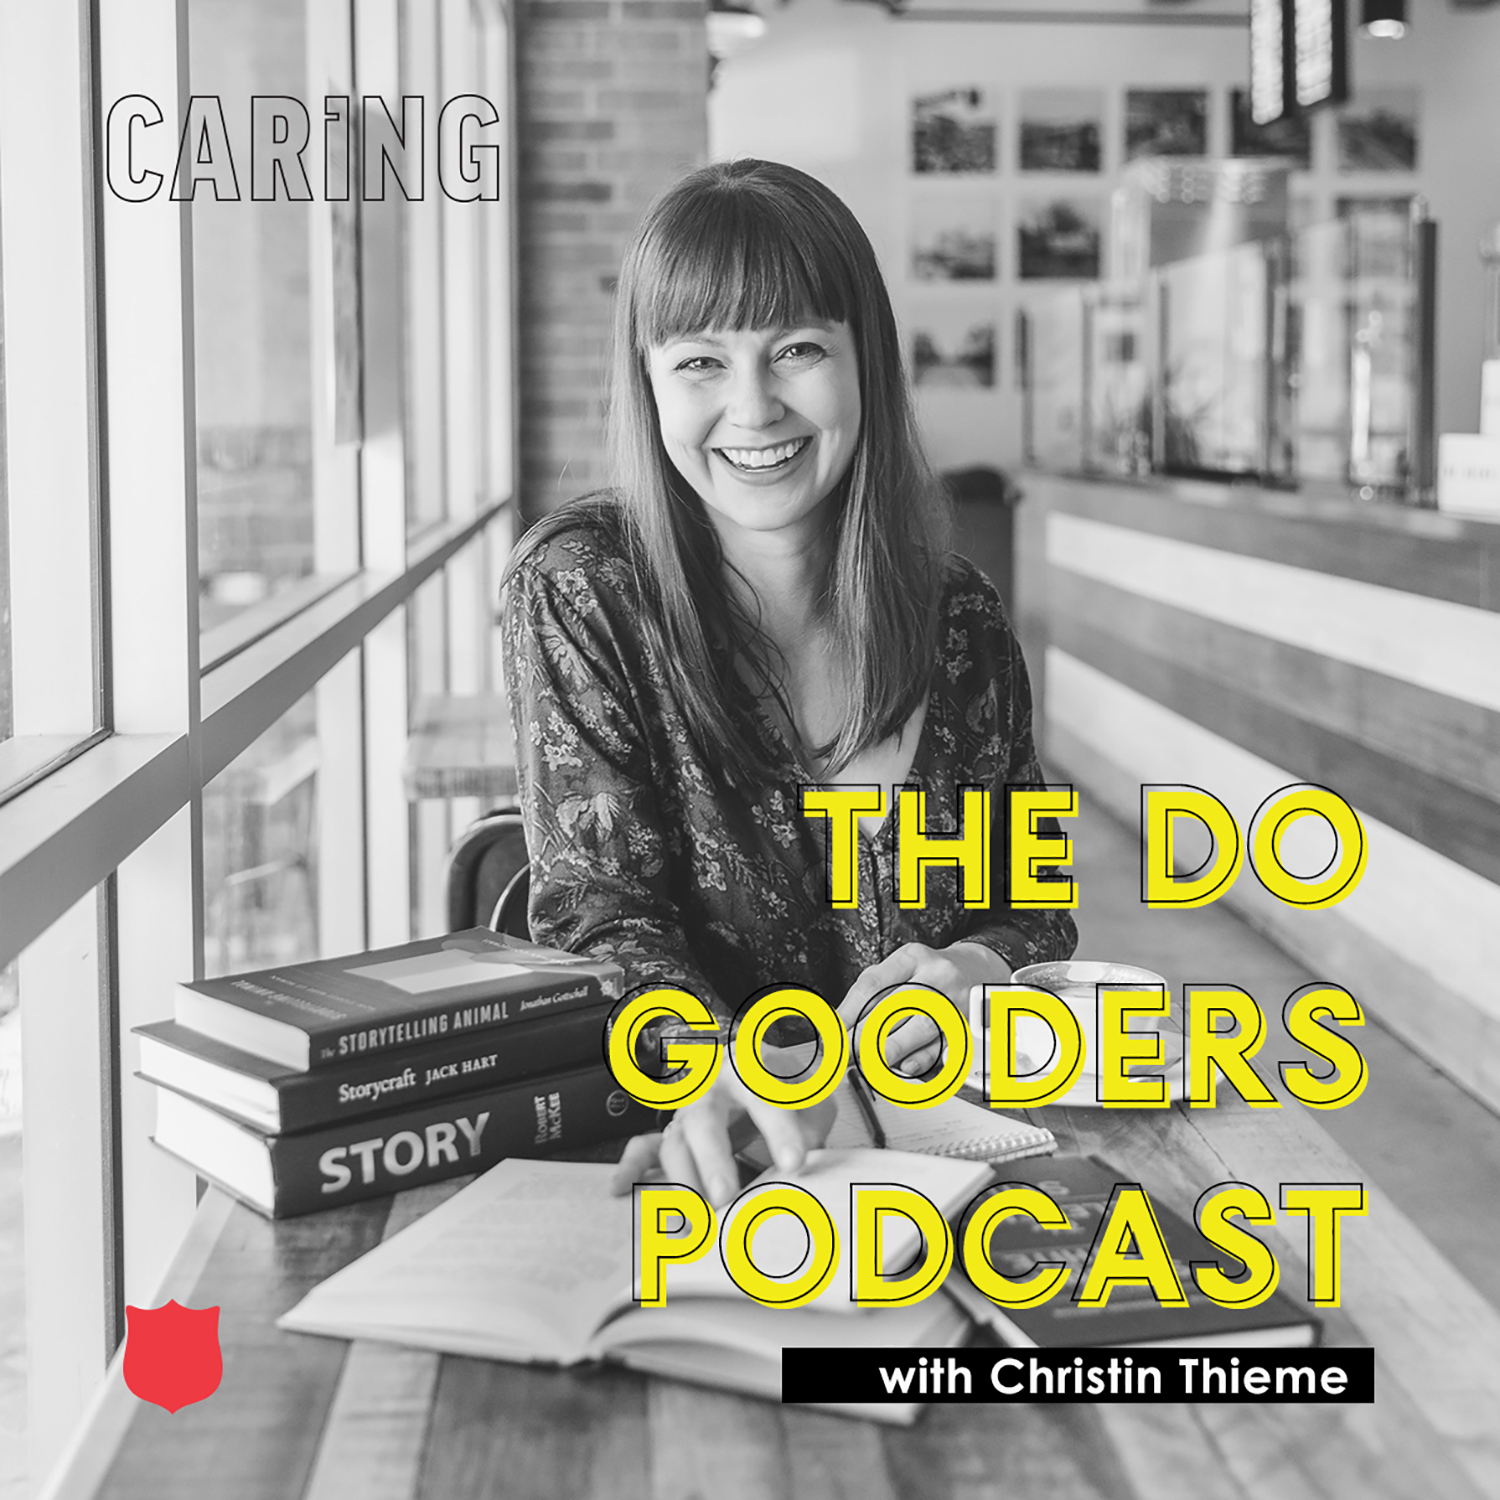 The Do Gooders Podcast show art